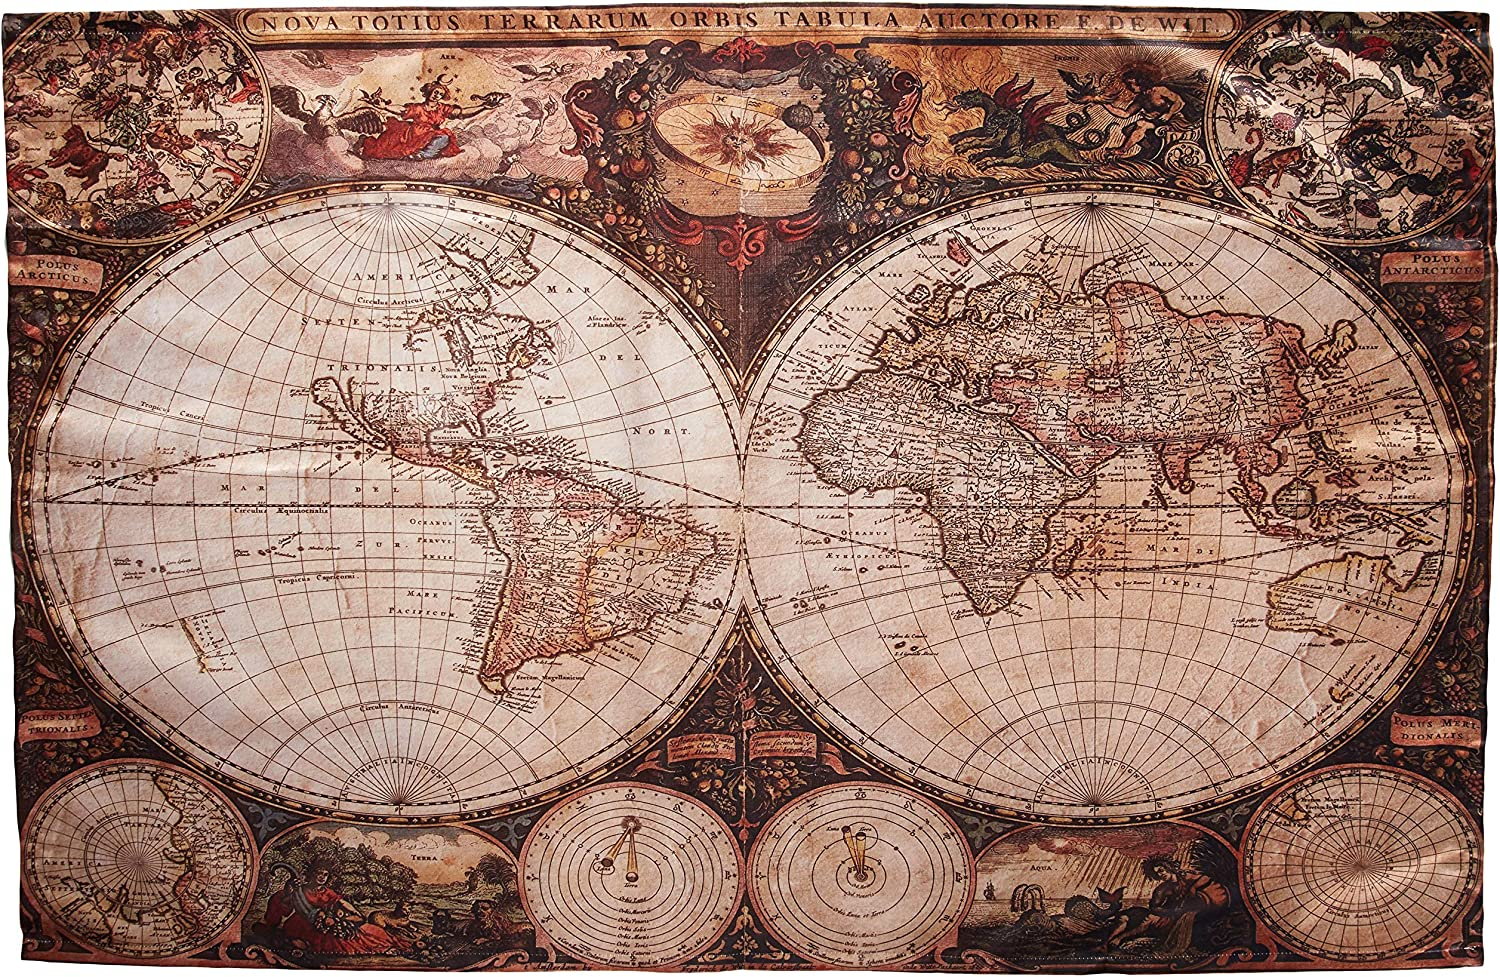 Ambesonne World Map Tapestry Vintage Wanderlust Decor, Image of Old Map in 1720s Nostalgic Style Art Historical Atlas Decor, Bedroom Living Room Dorm Wall Hanging Art, 60 X 40 Inches, Brown Beige